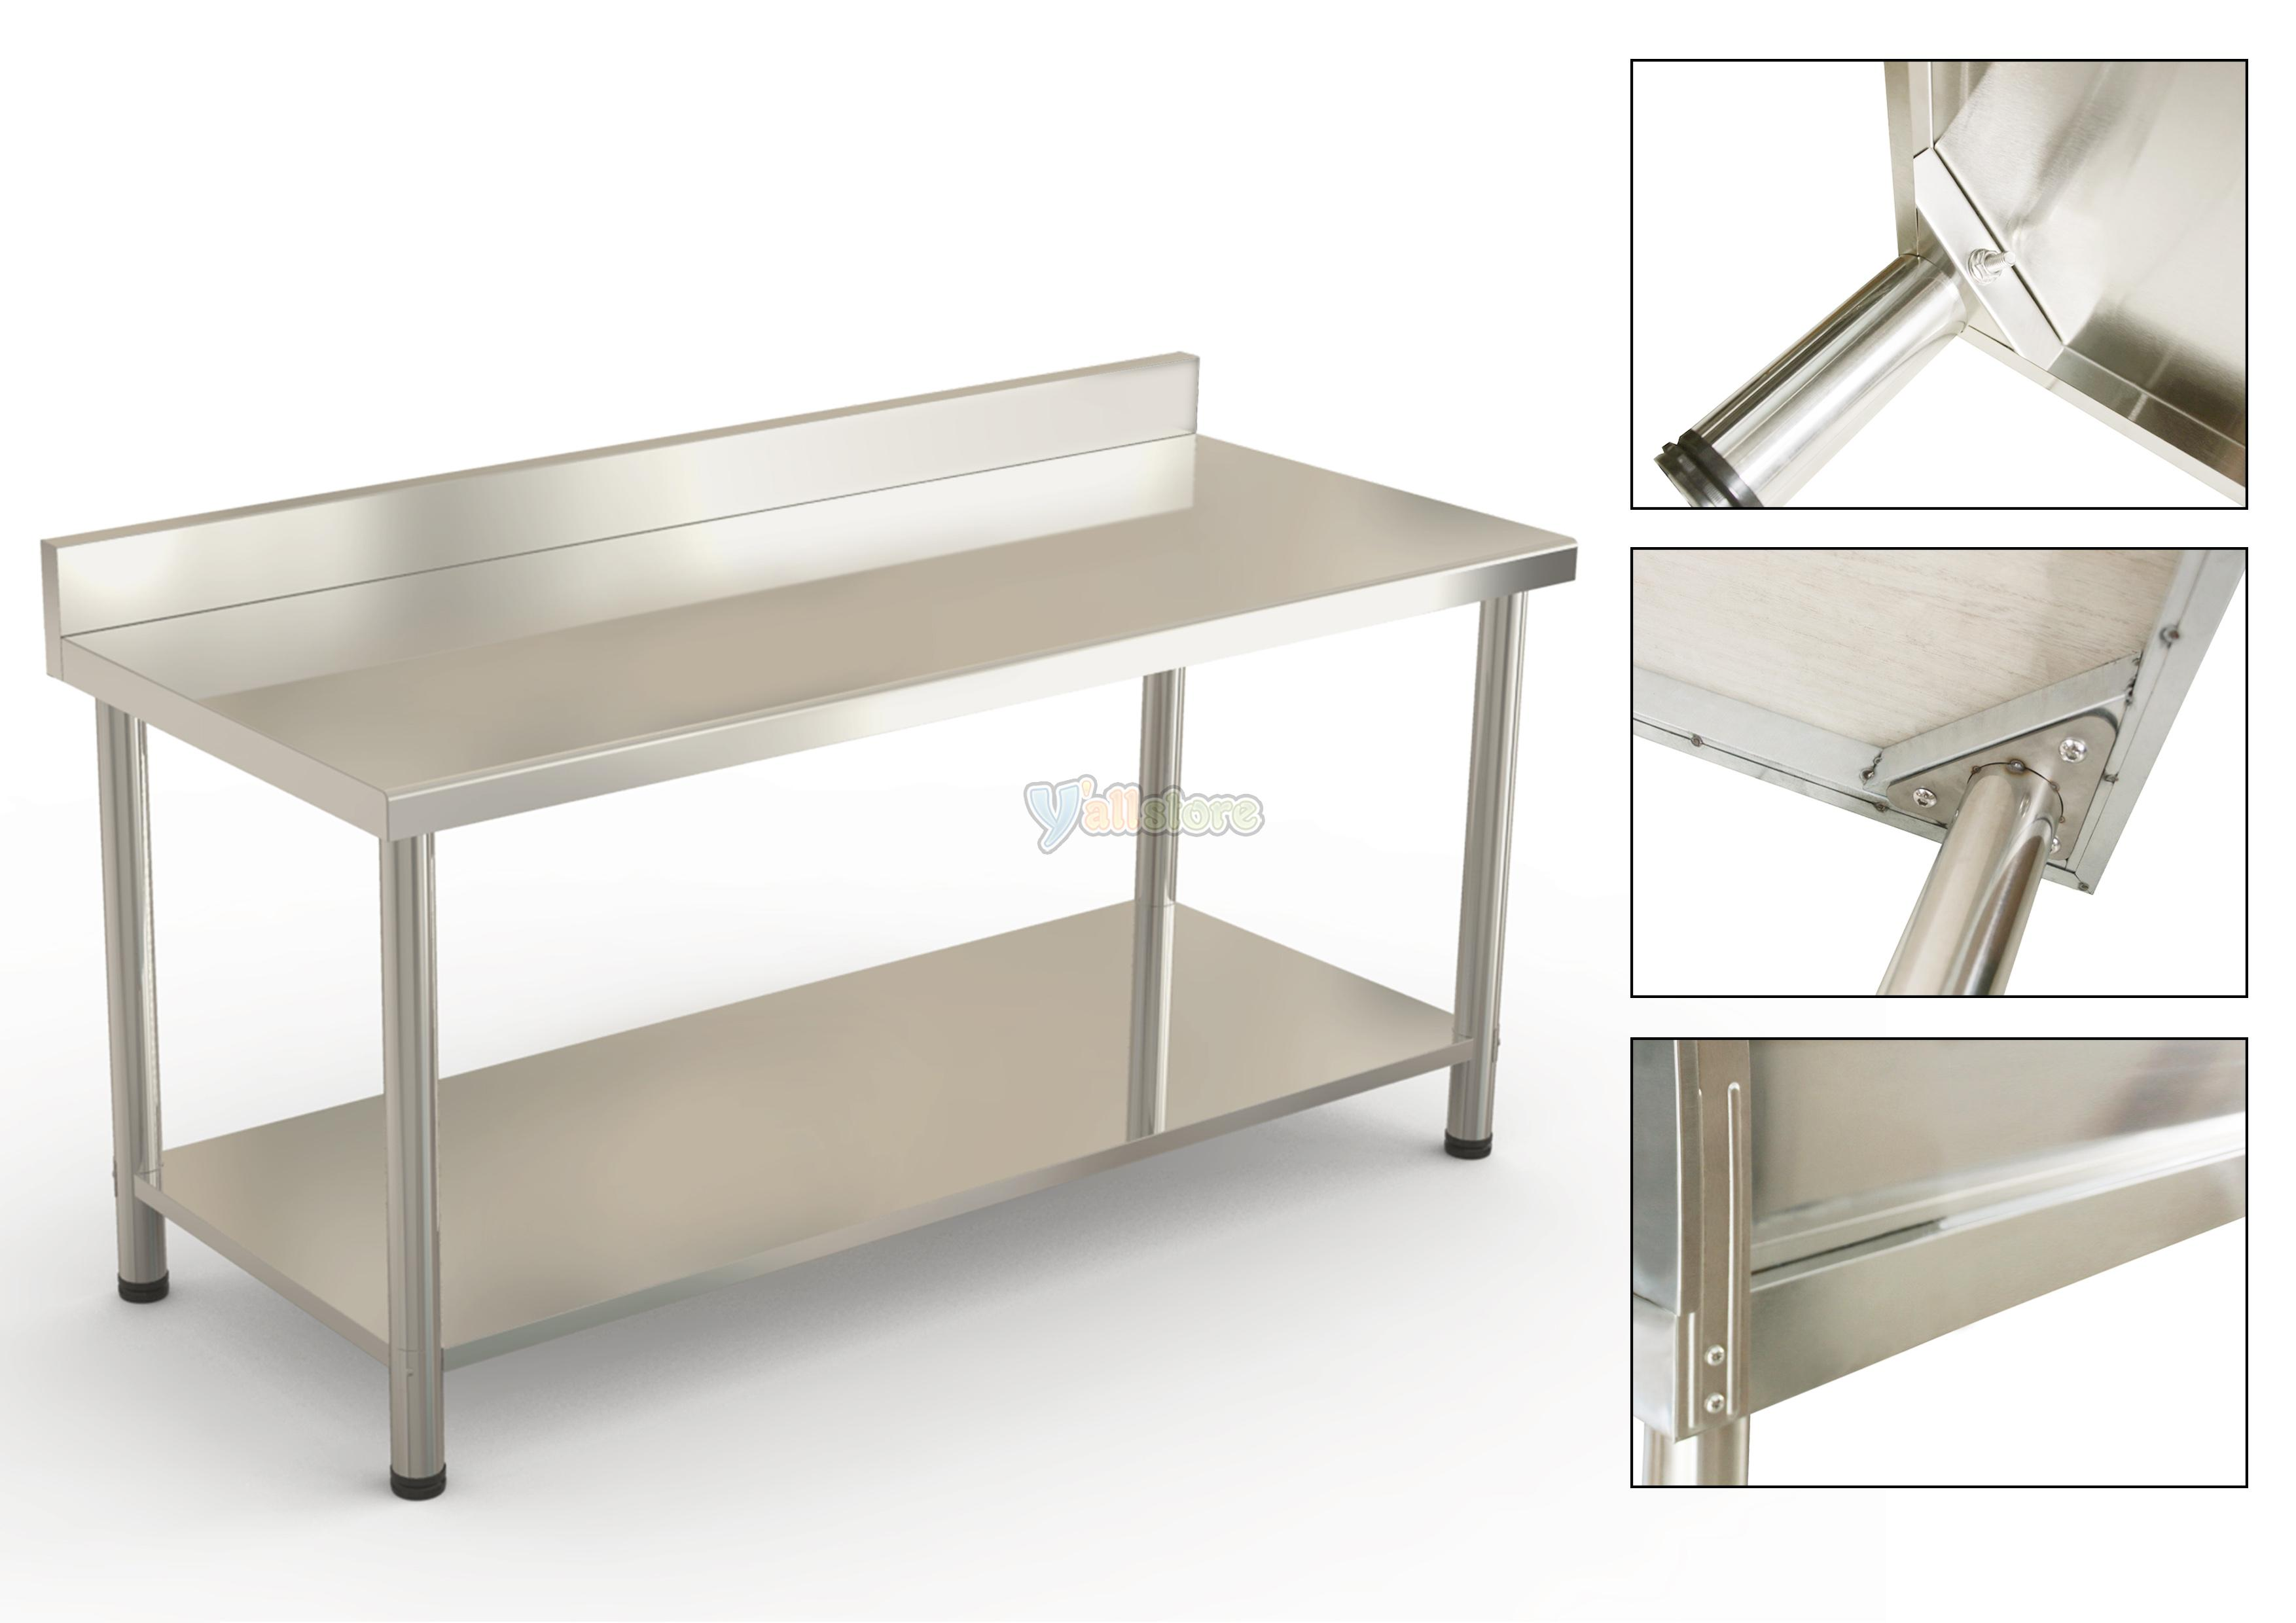 stainless steel kitchen table white wooden chairs 60 quot x 24 work bar